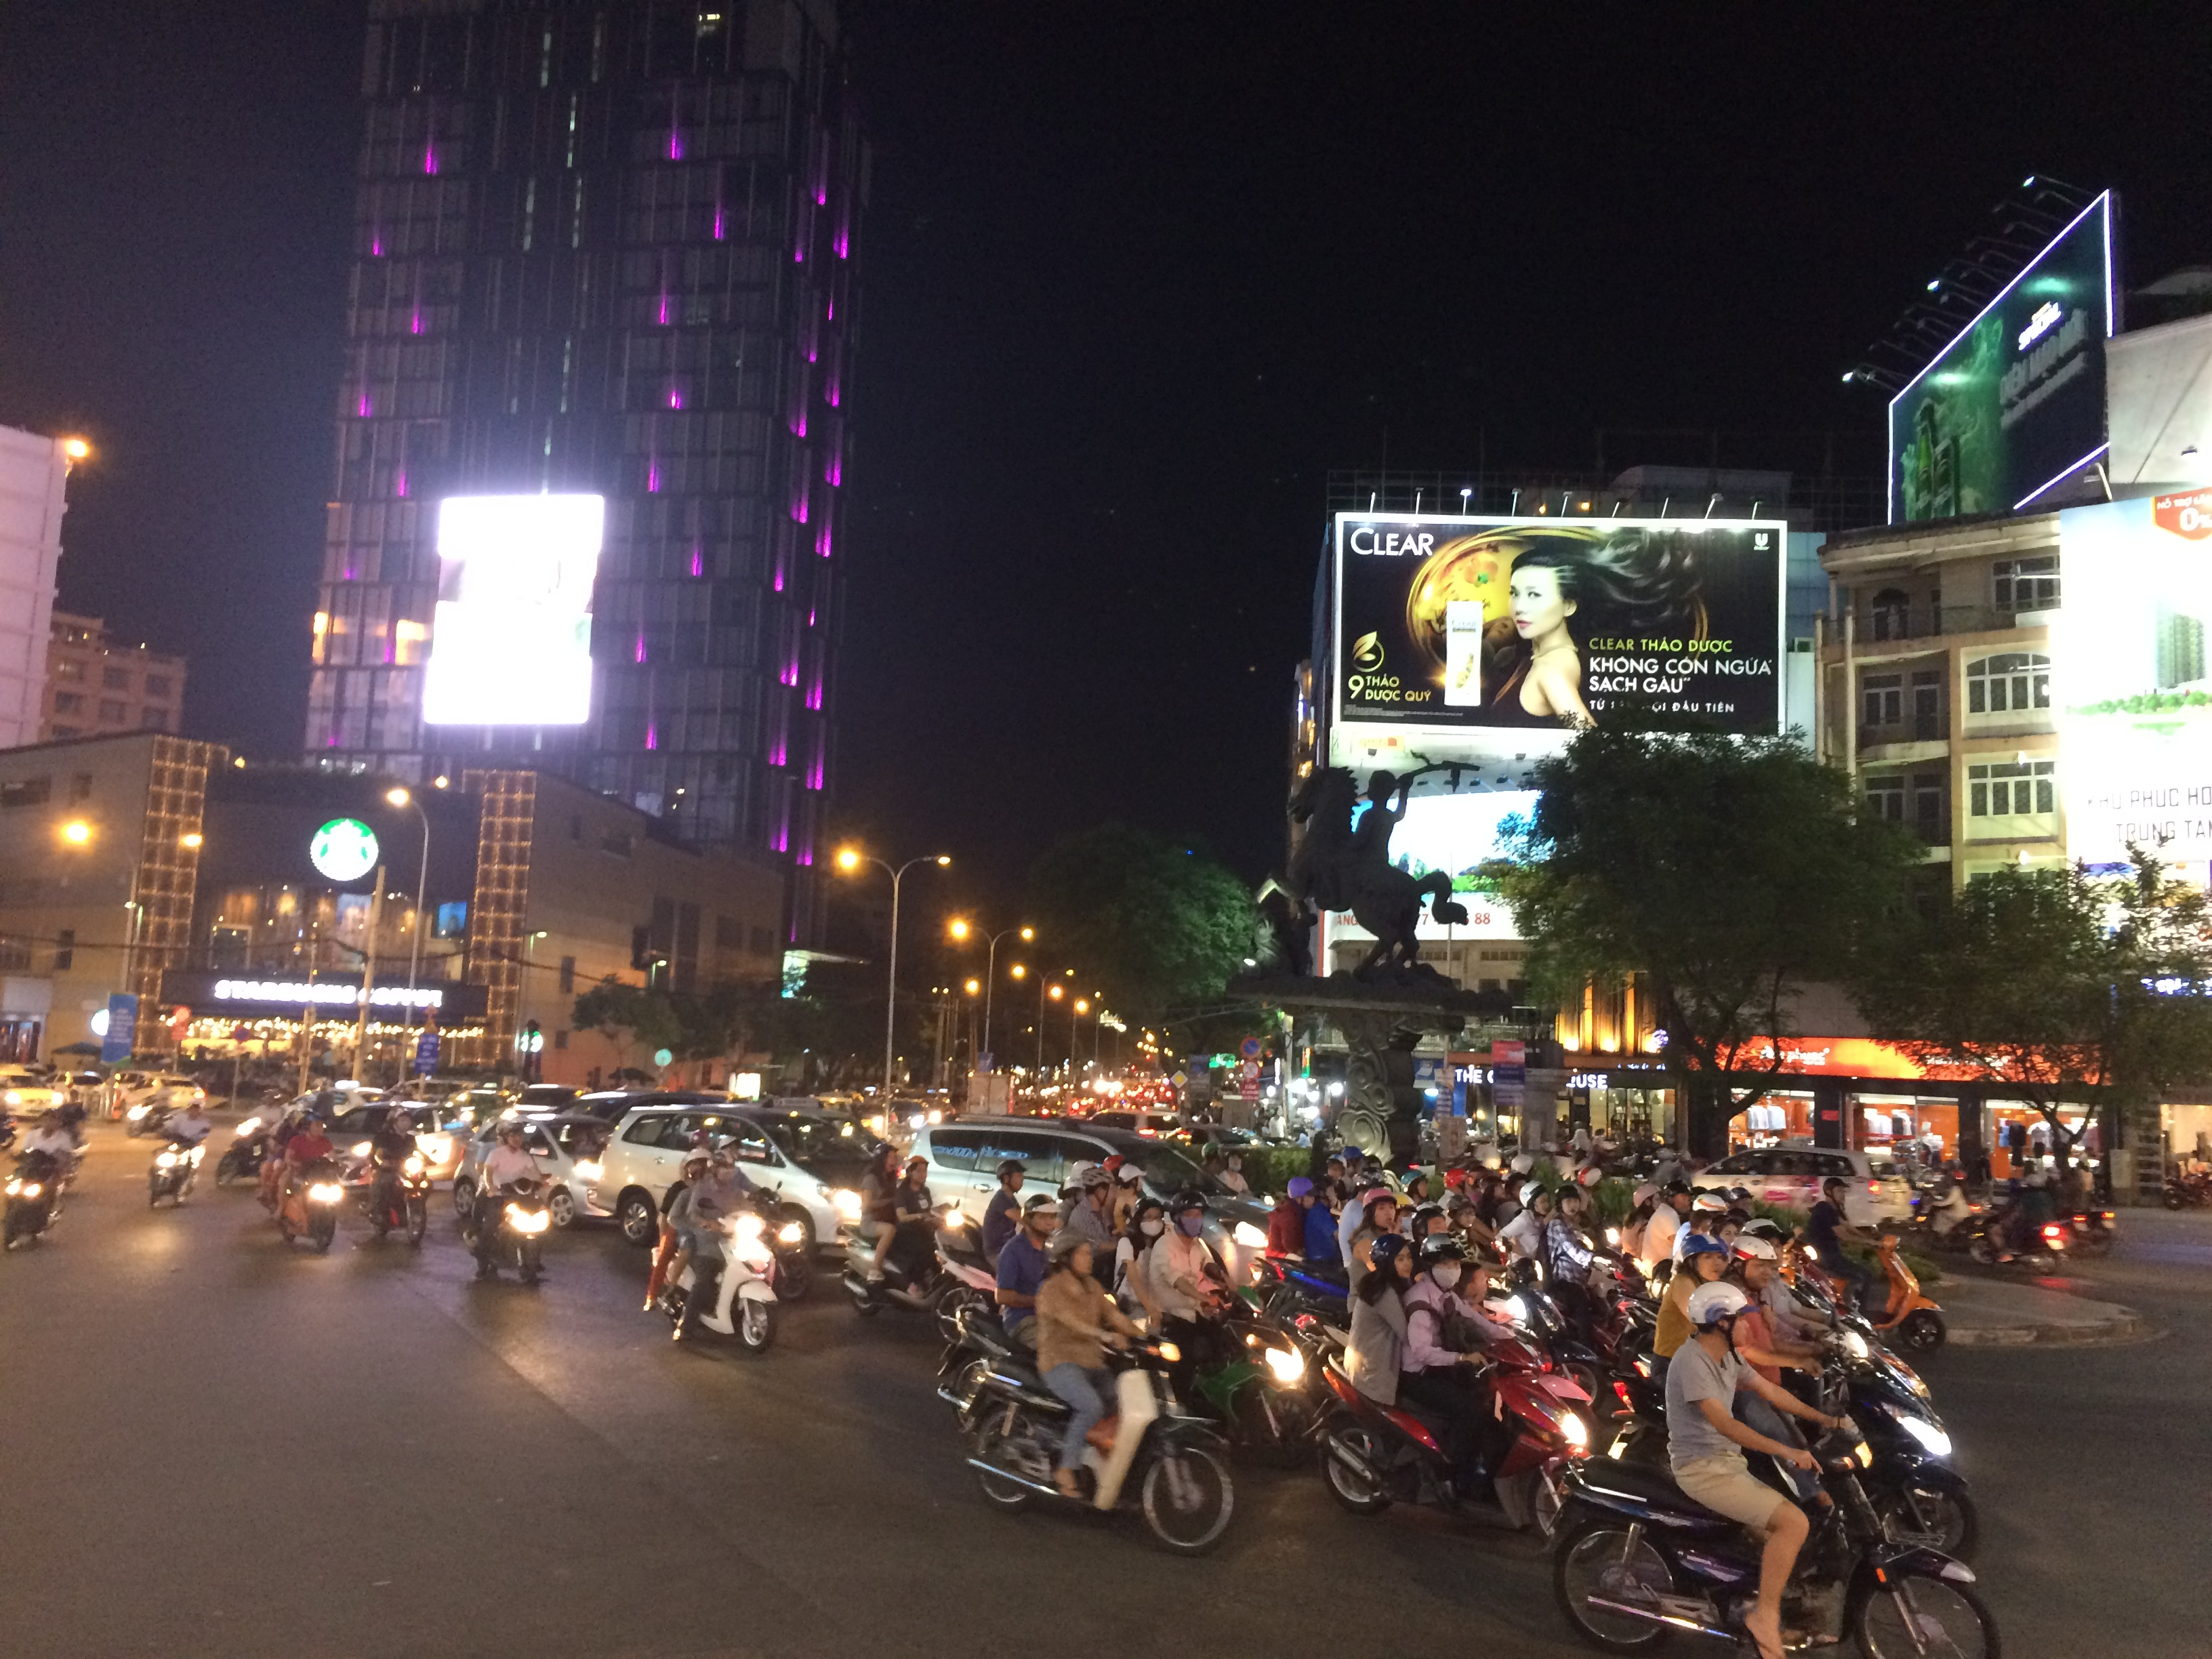 Ho Chi Minh city at night. The street is filled with motorbikes.